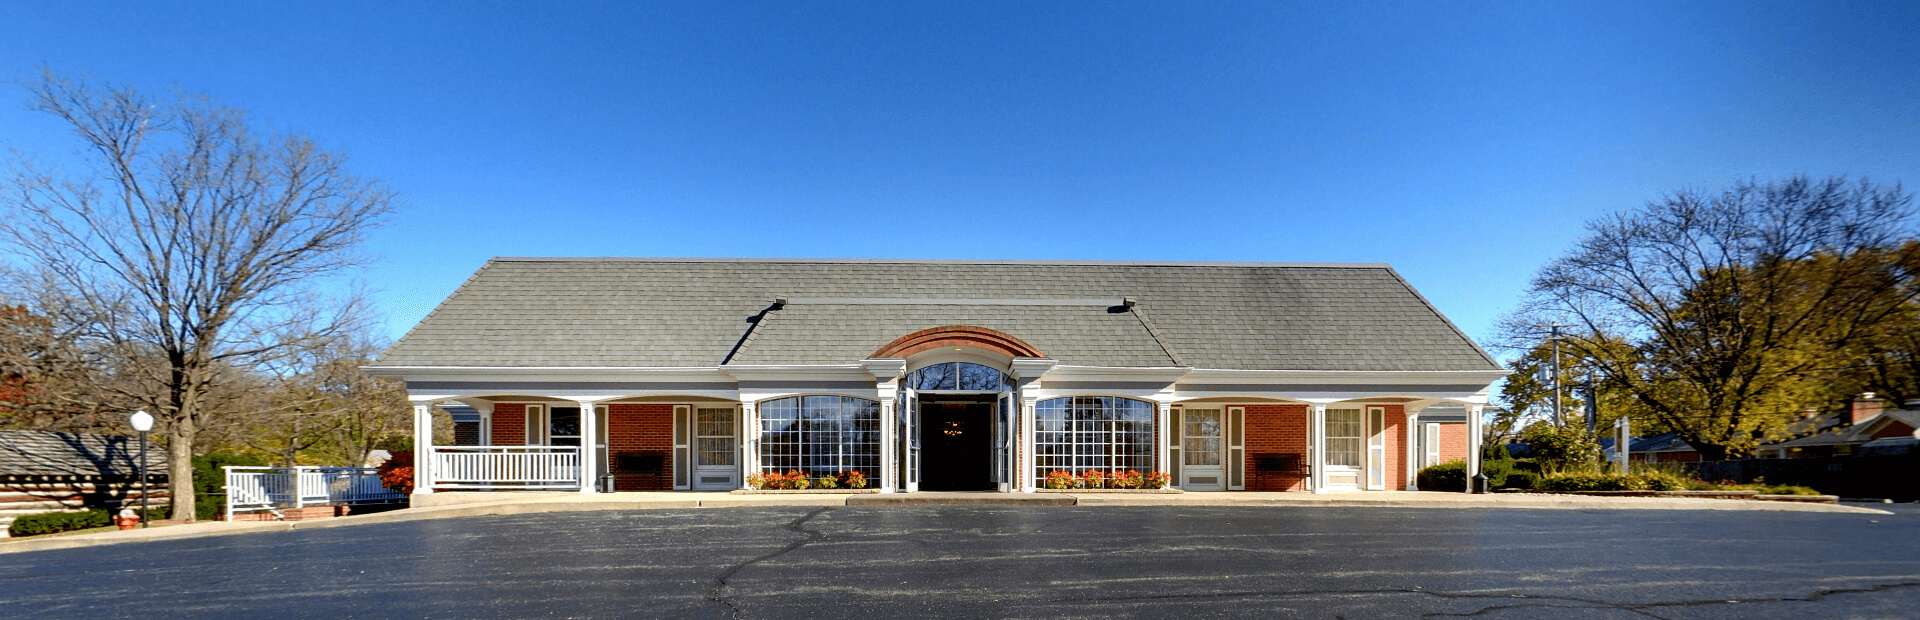 Dieterle Memorial Funeral Home, Cemetery and Cremation Ceremonies in Montgomery, IL